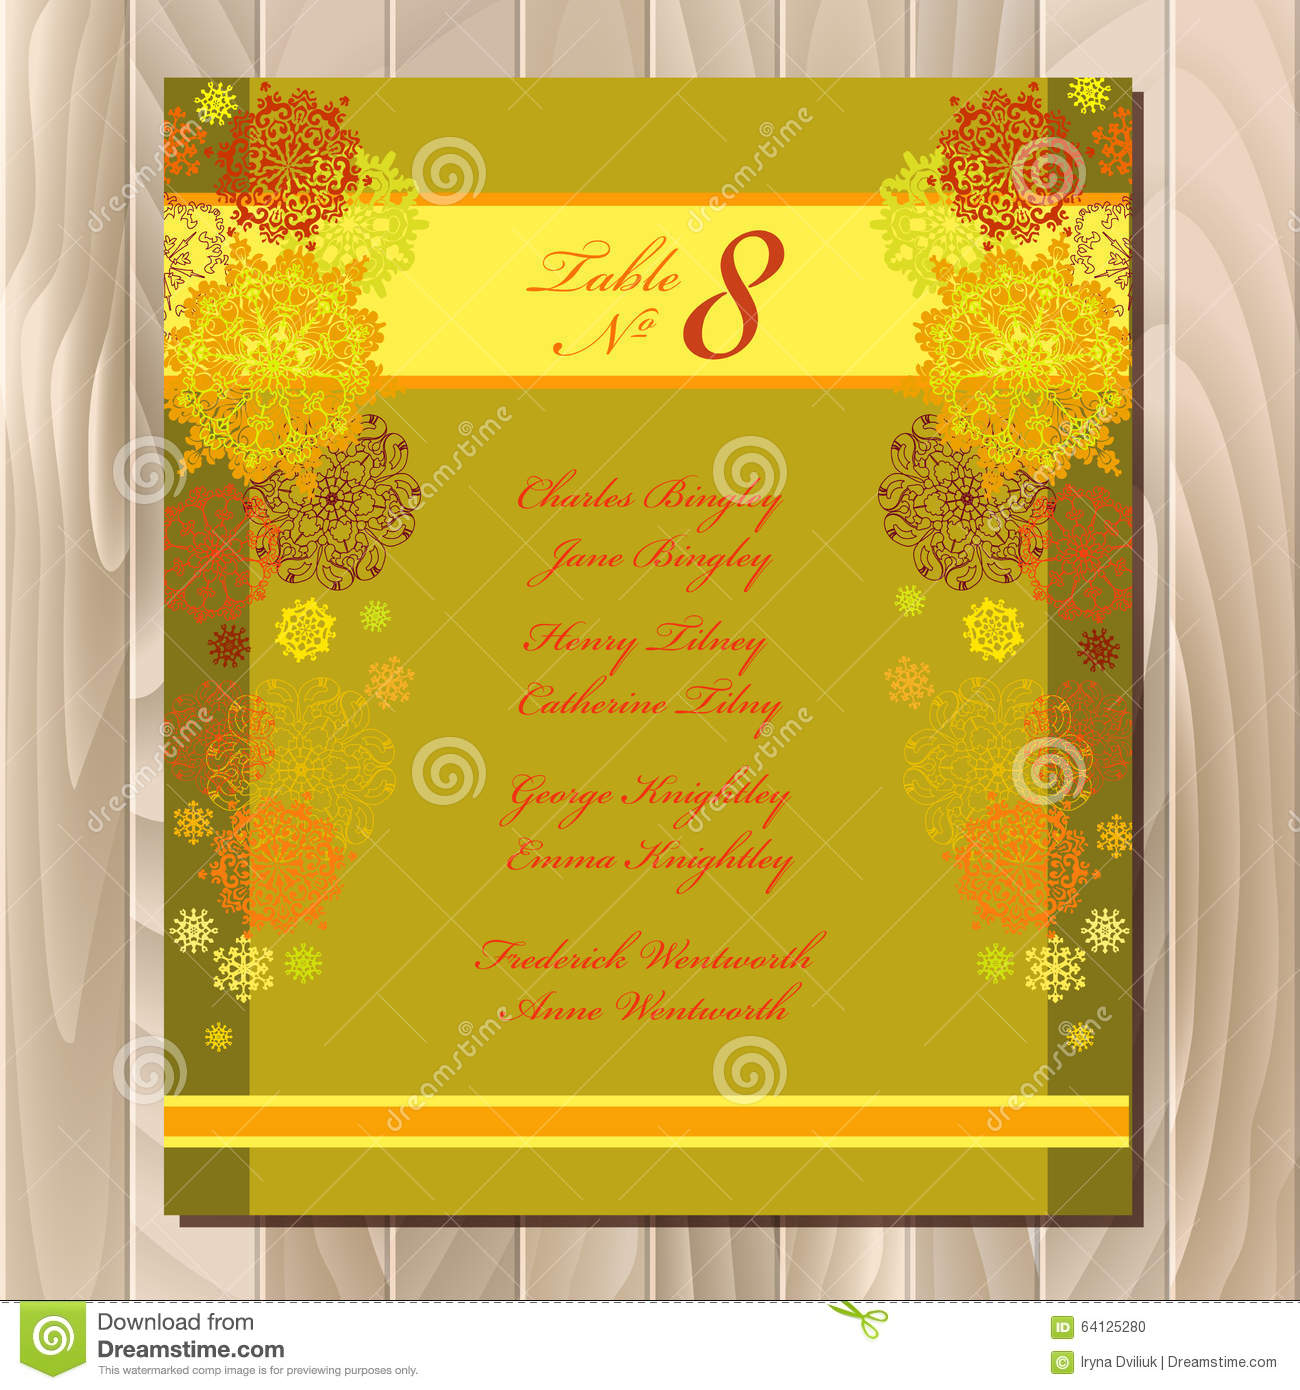 table guest list vector background with winter snowflakes wedding